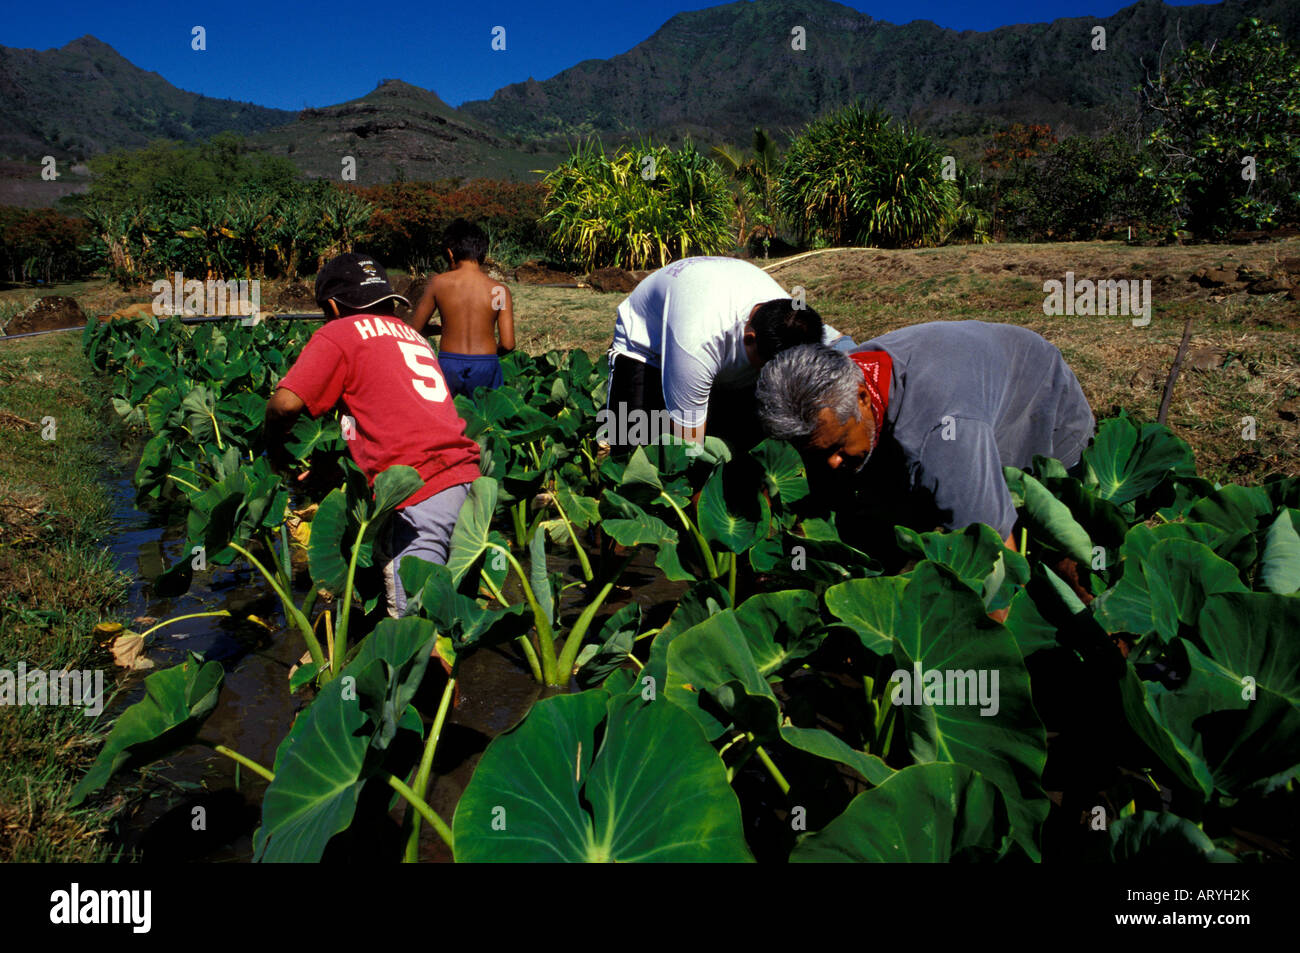 Working in the kalo loi (taro pond) at Kaala Farms, a Hawaiian culture learning center in Waianae - Stock Image